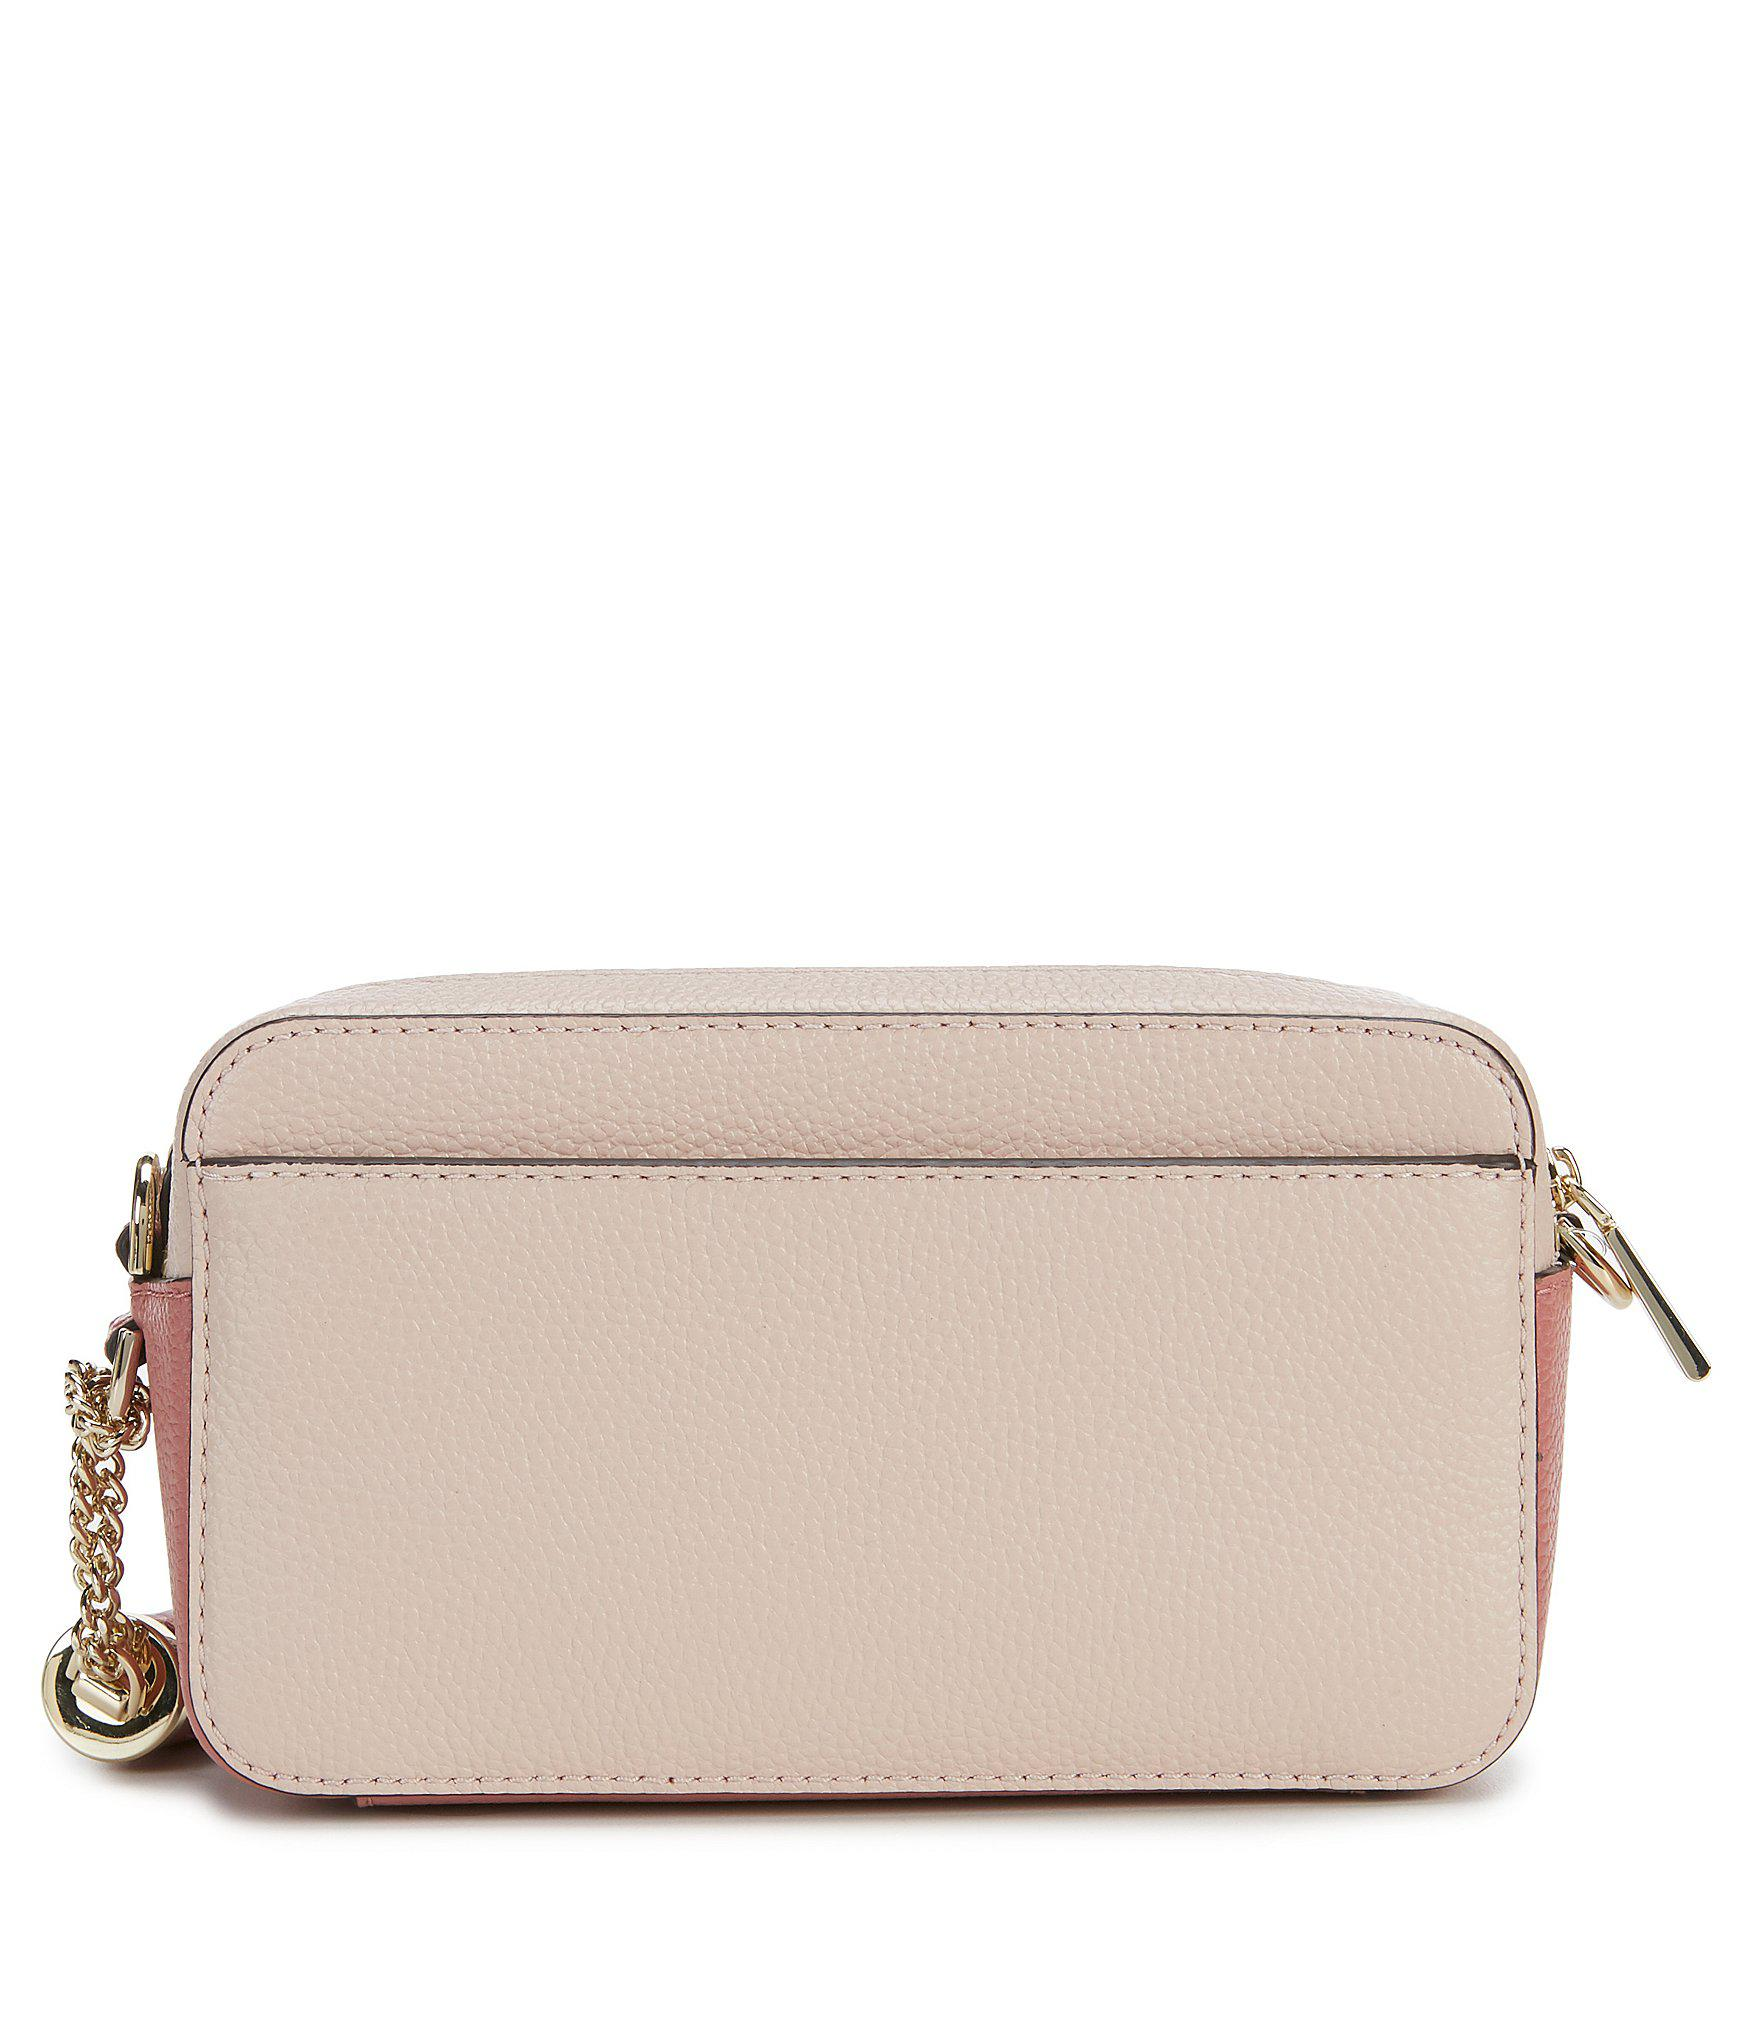 7f442c7e5ded58 MICHAEL Michael Kors - Multicolor Small Colorblock Pocket Camera Cross-body  Bag - Lyst. View fullscreen